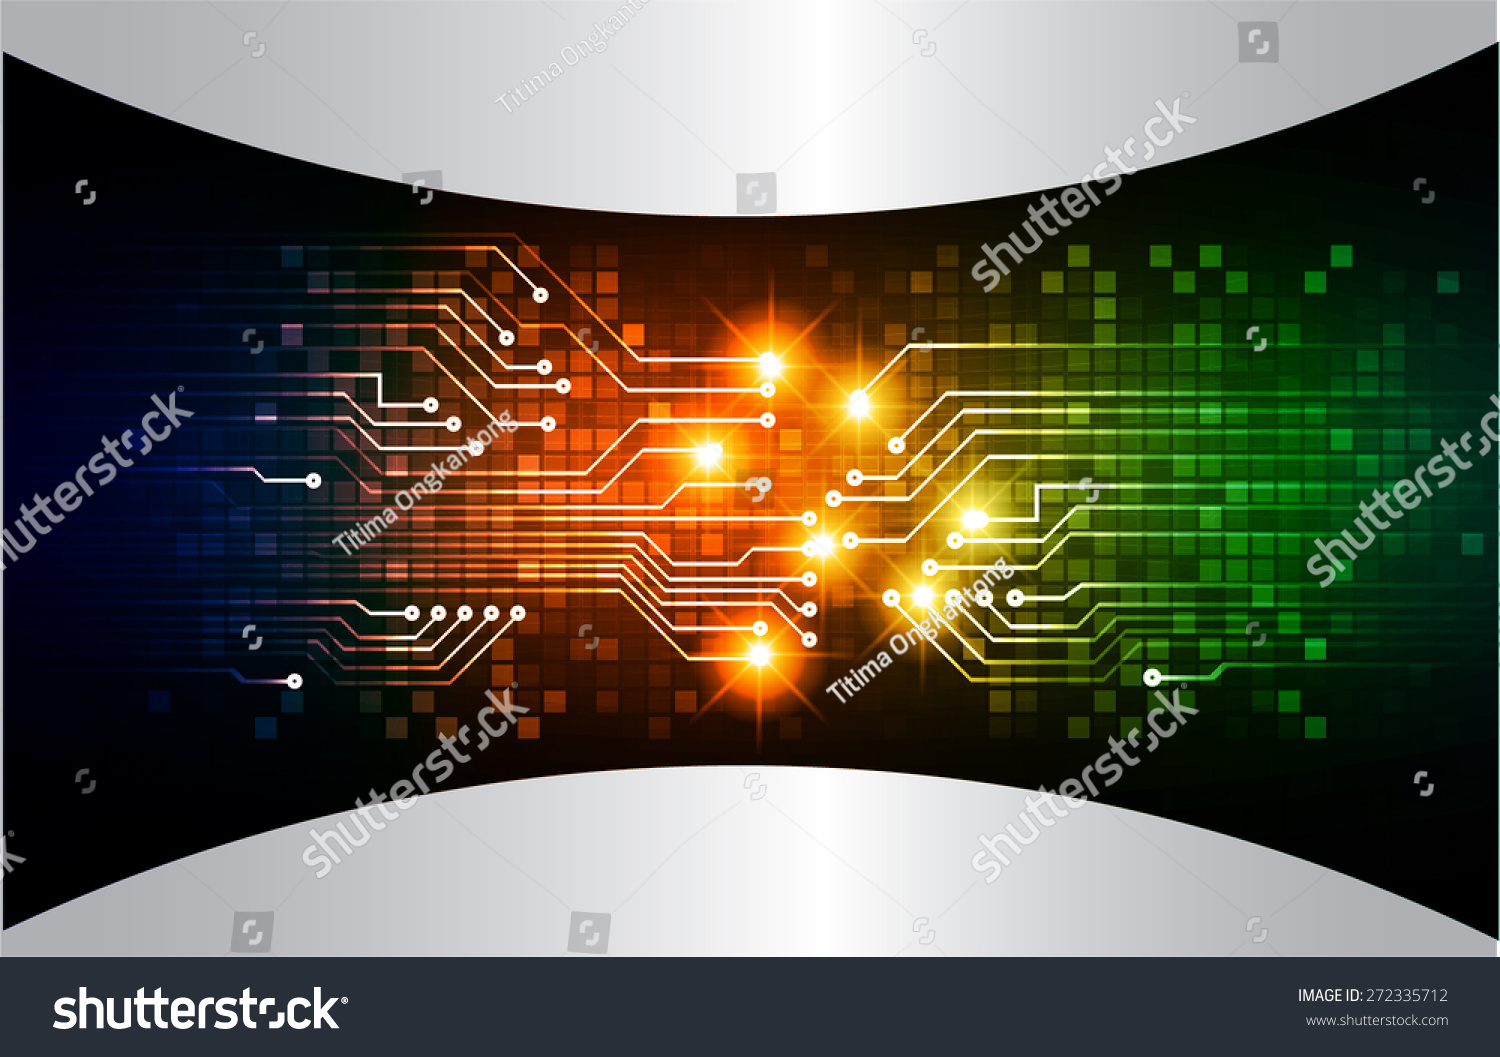 Abstract Circuit Board Background By Silvertiger: Dark Blue Orange Green Color Light Abstract Technology